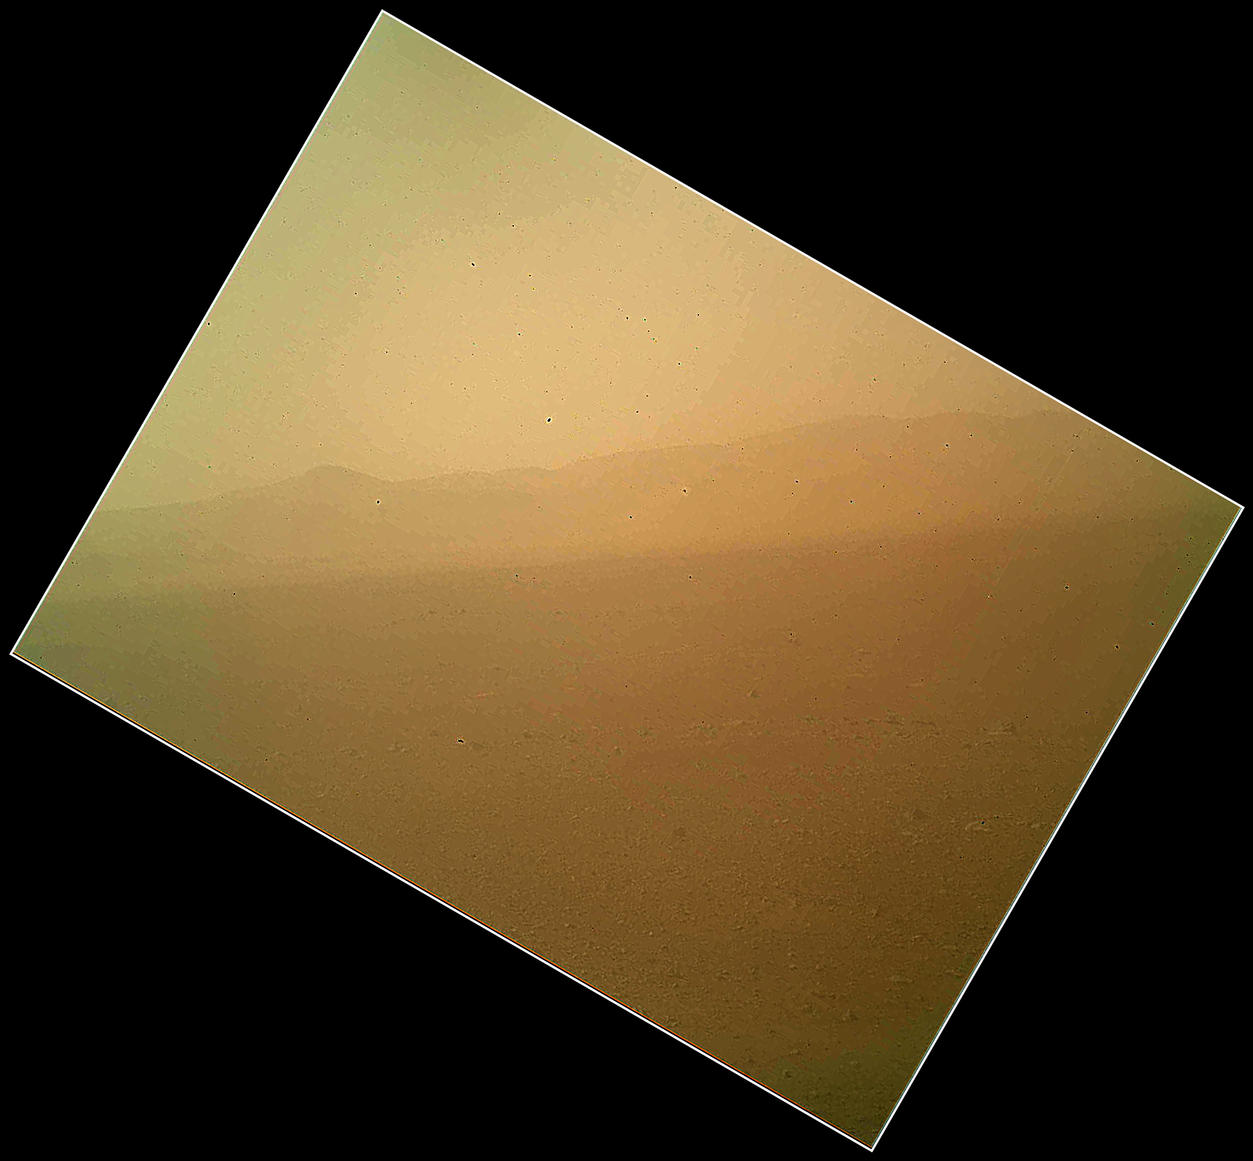 First Color Image of the Martian Landscape Returned from Curiosity